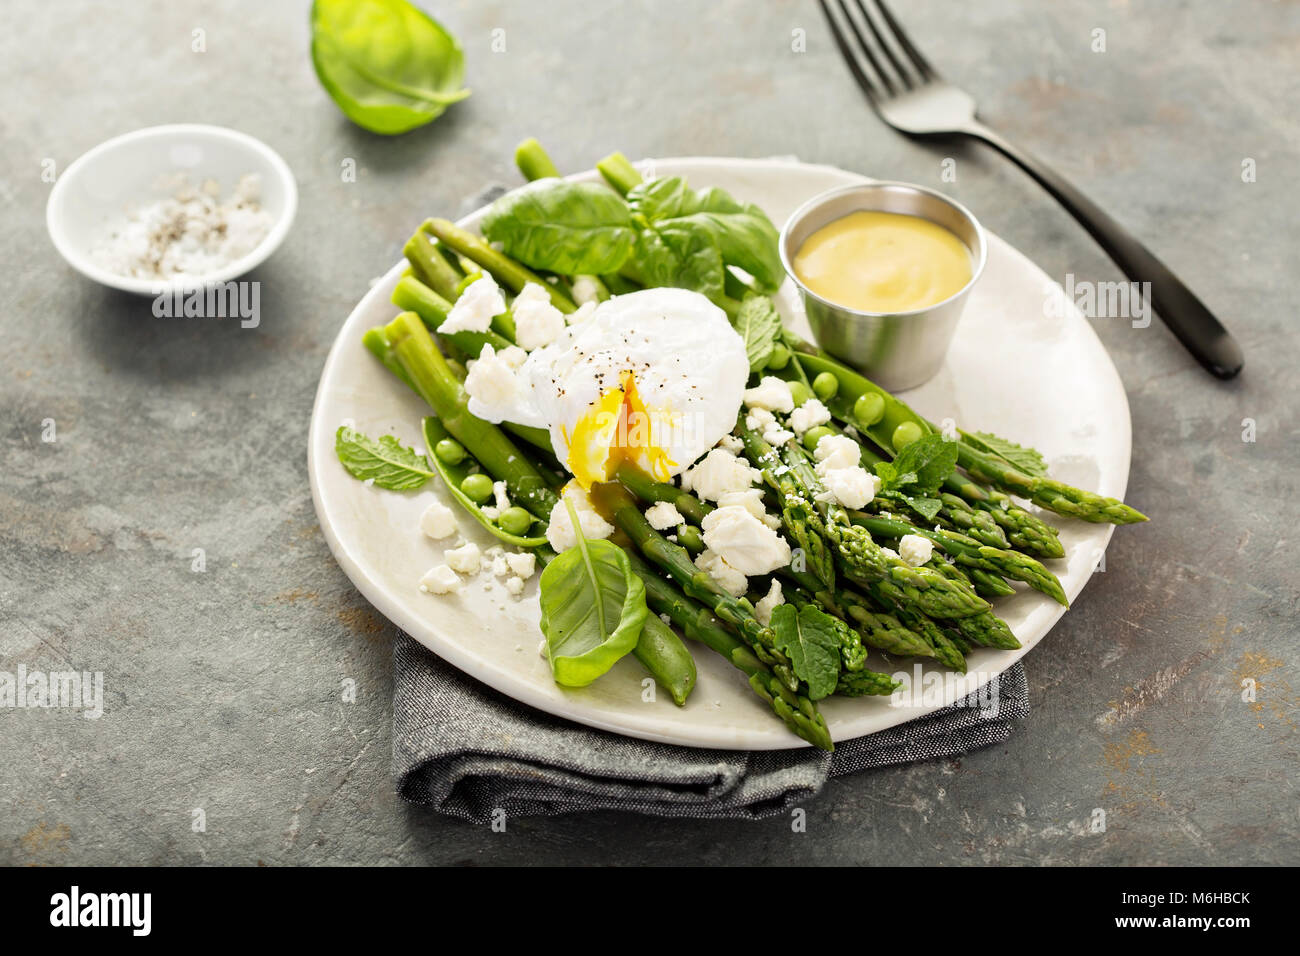 Green peas and asparagus with poached egg - Stock Image